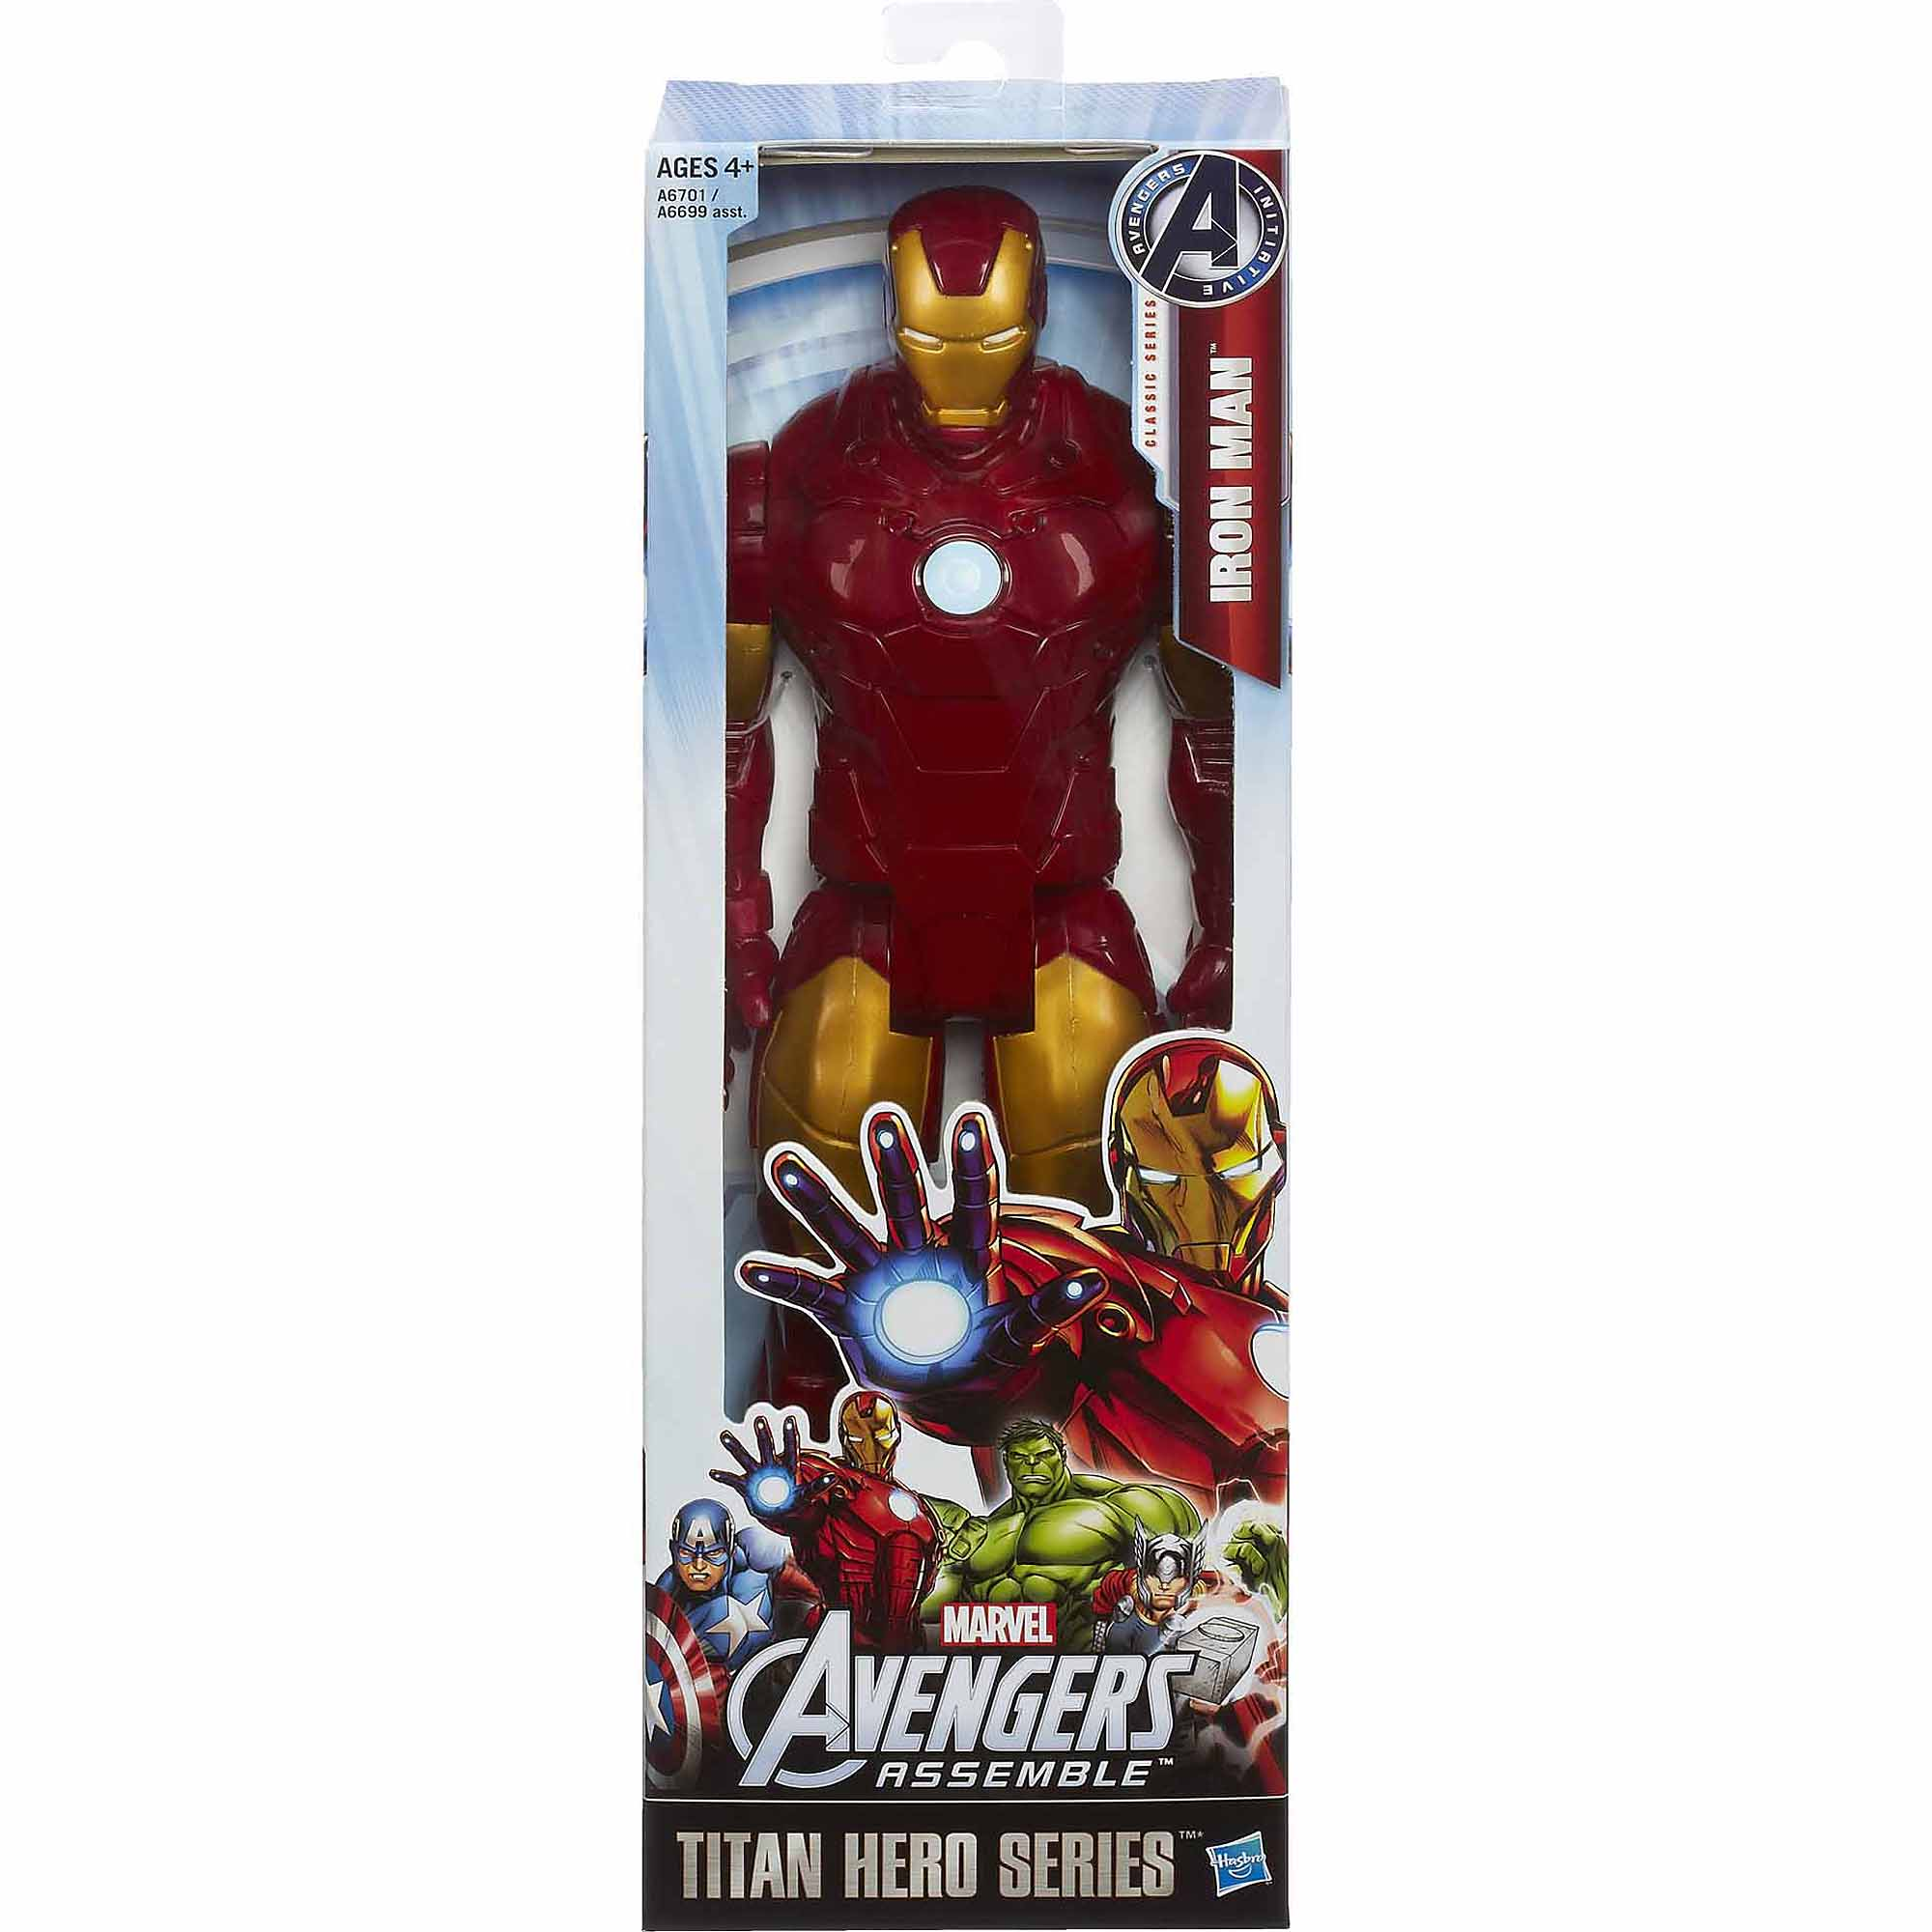 "Marvel Avengers Assemble Titan Hero Series Iron Man 12"" Figure"